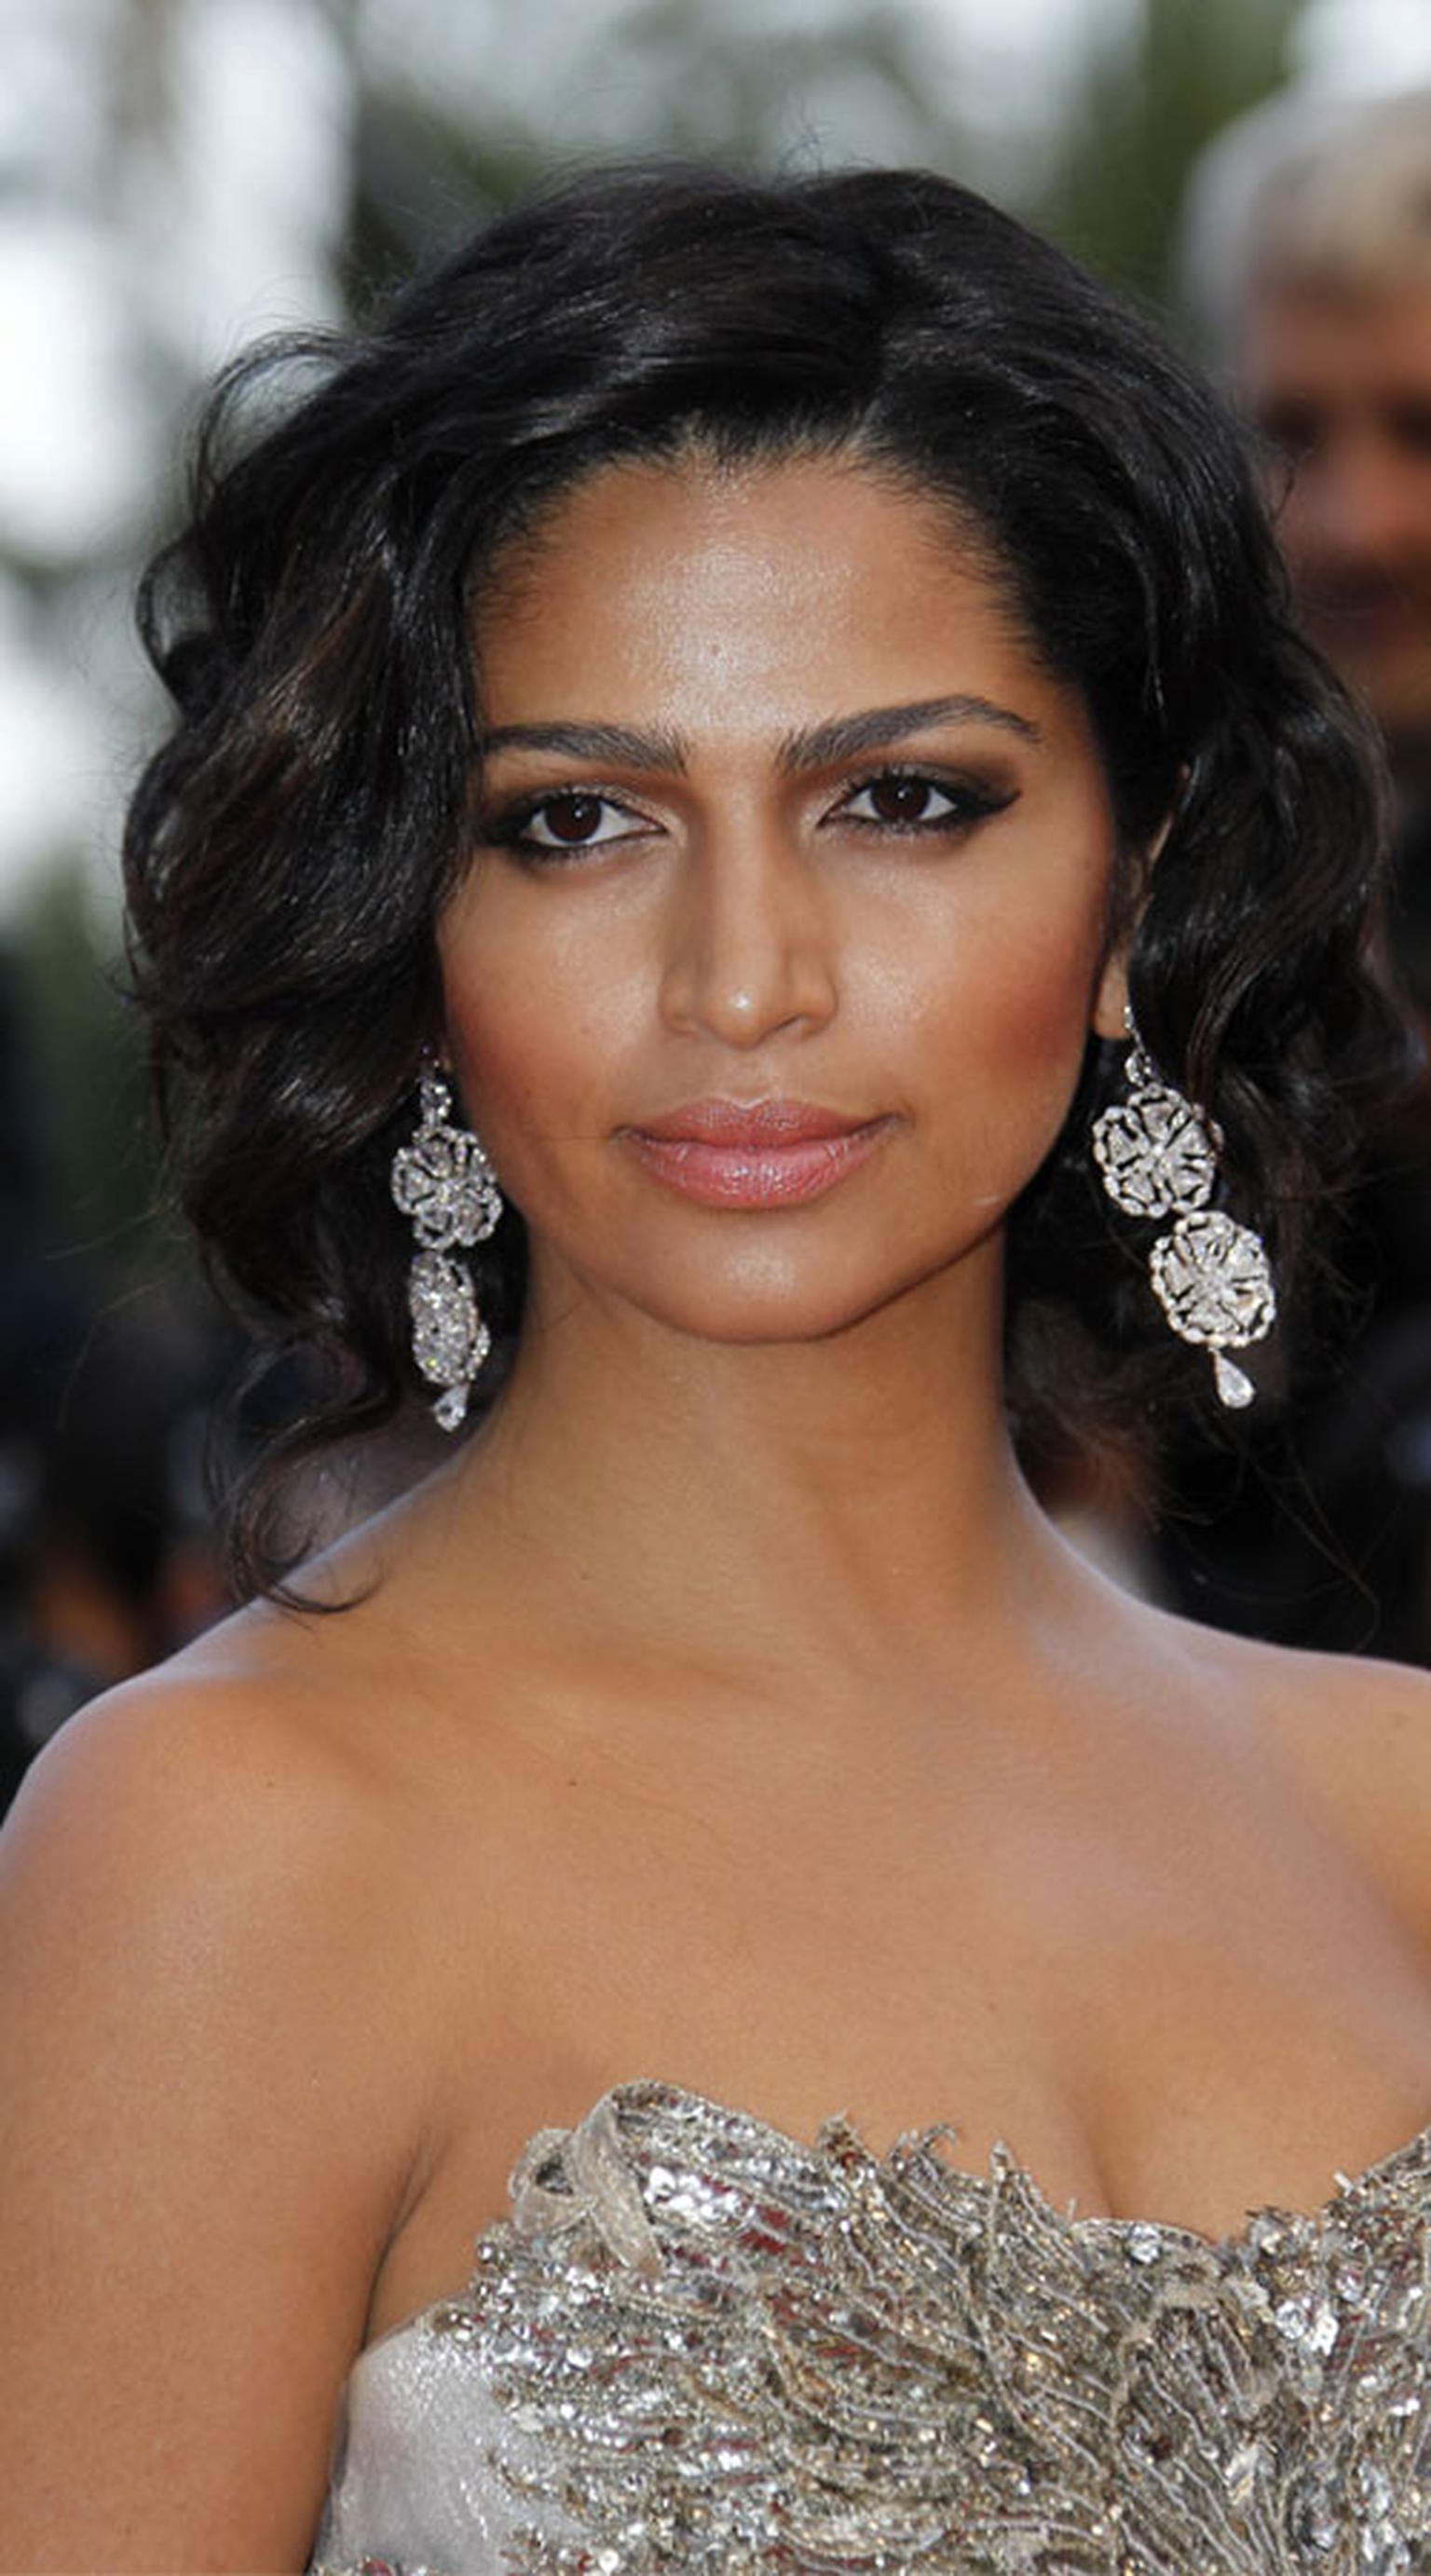 Camila_Alves_in_Chopard.jpg